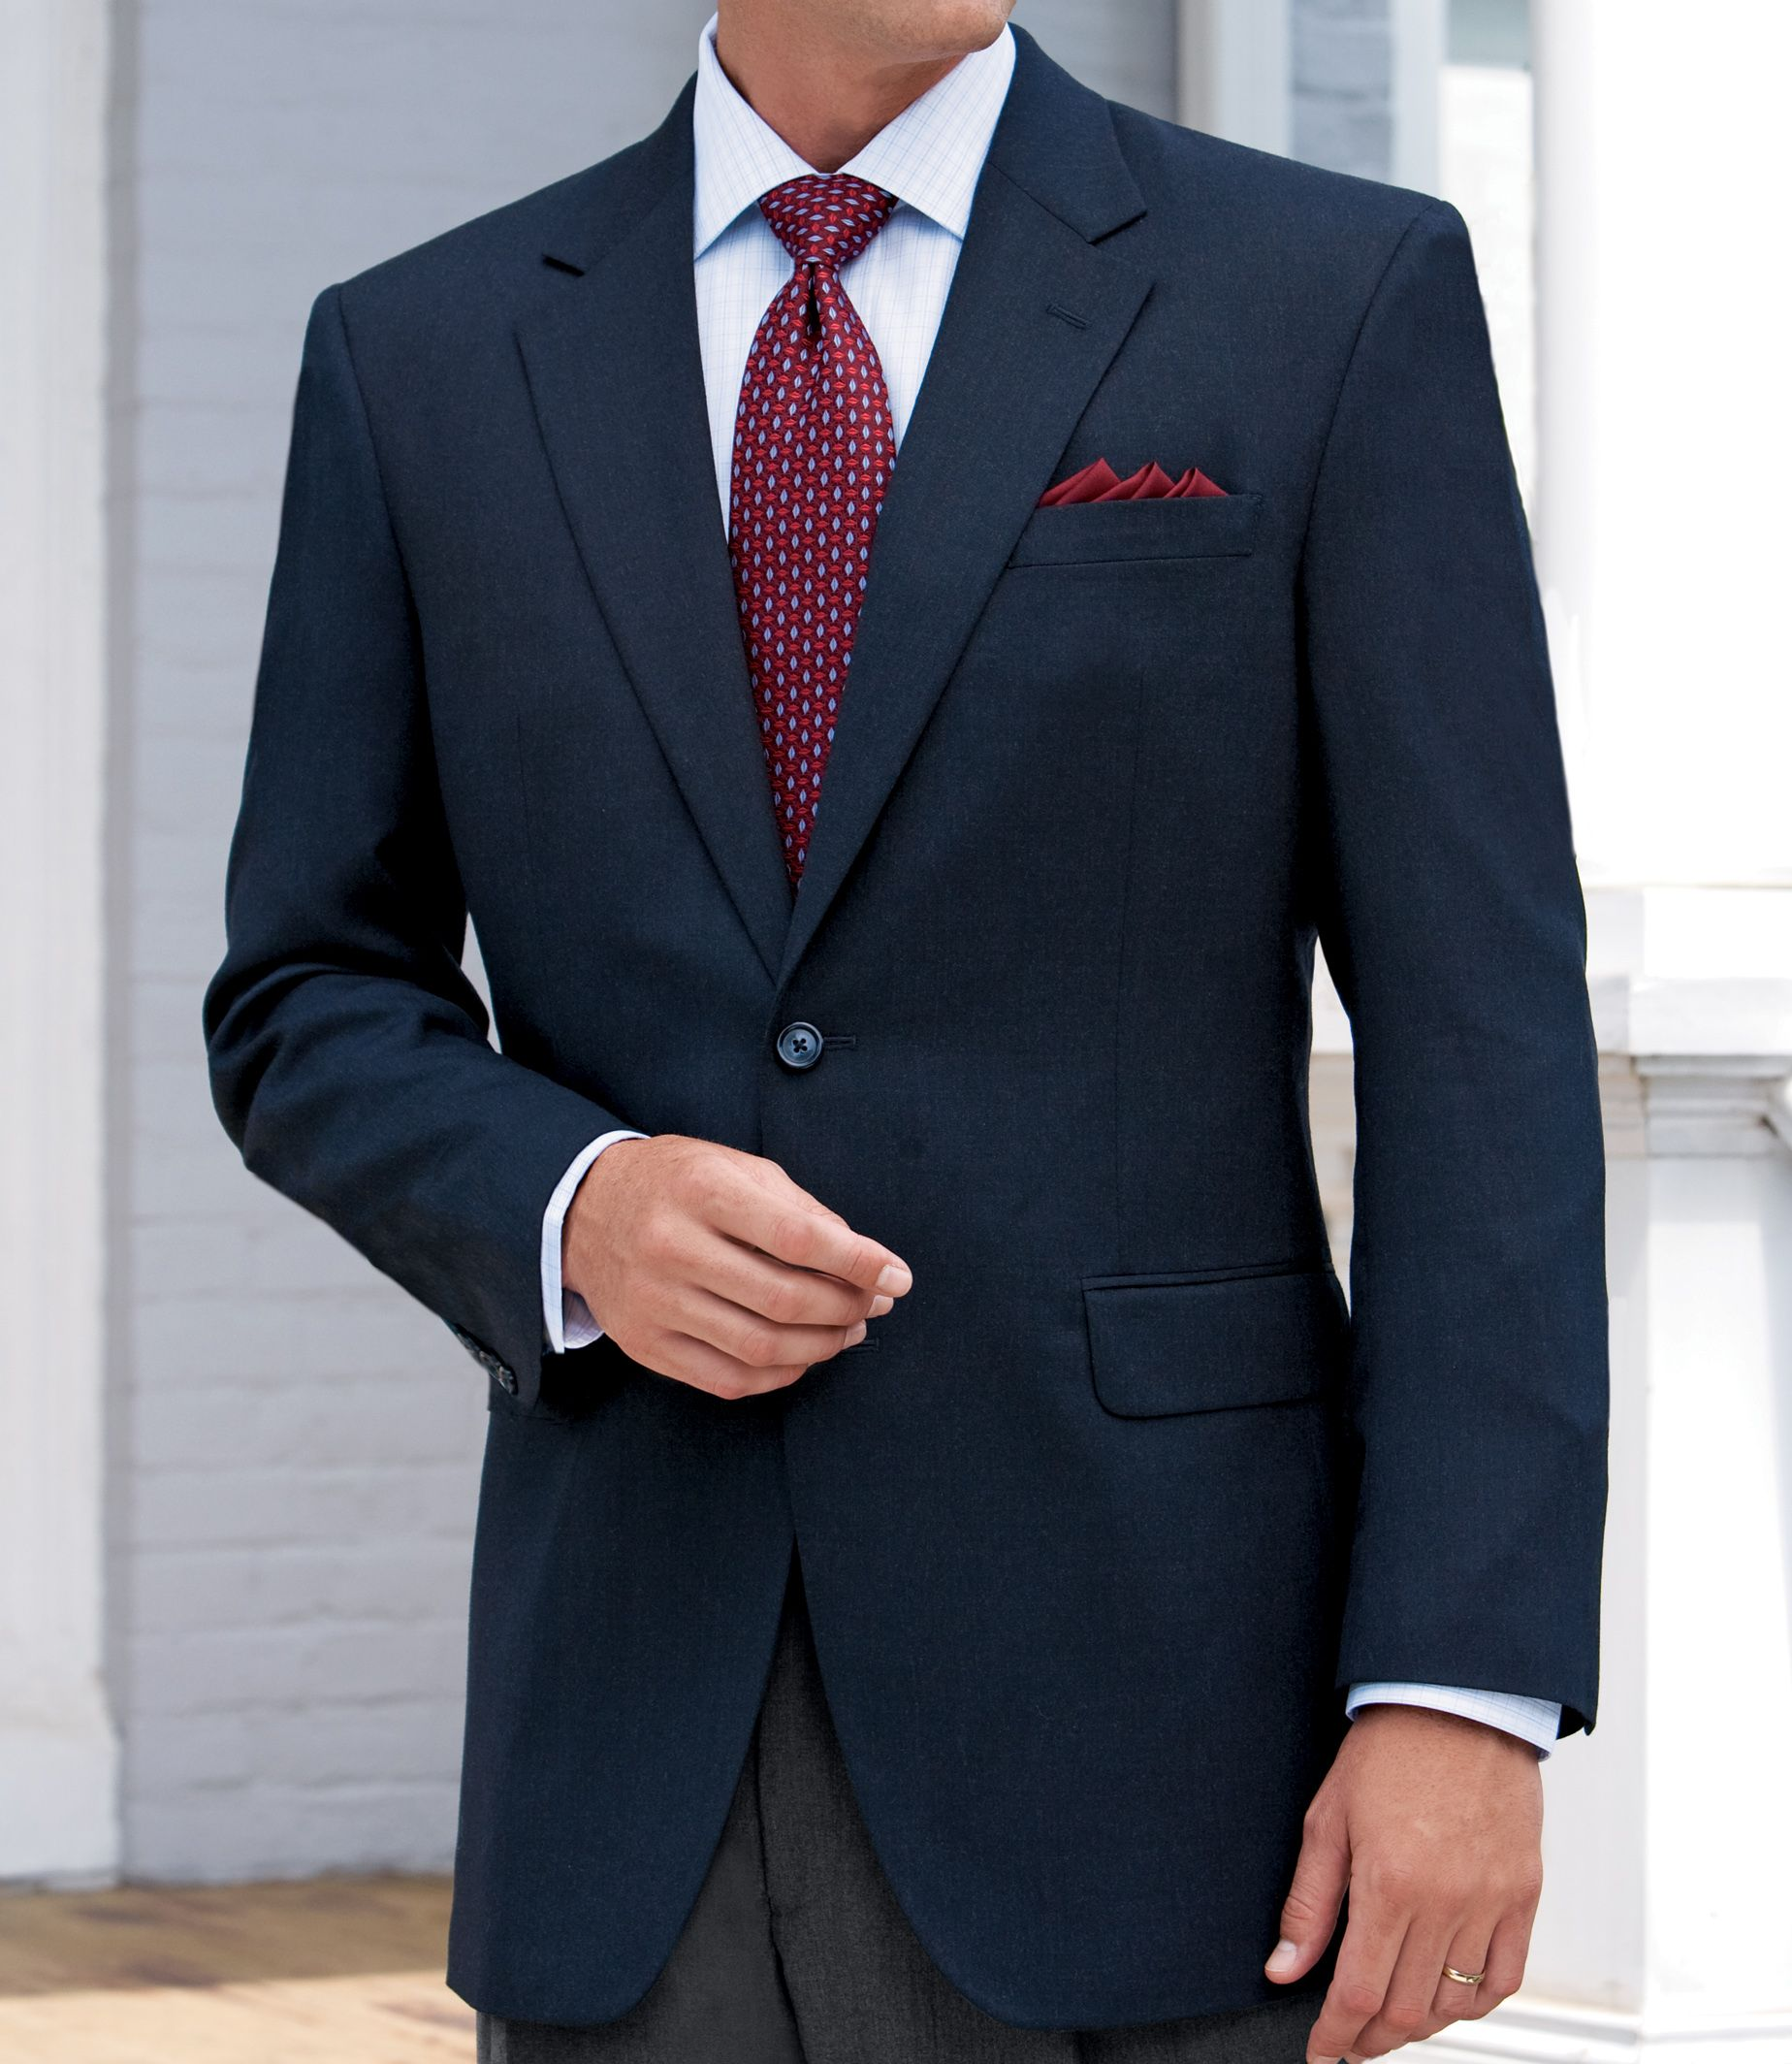 Wool/Cashmere 2-Button Blazer- Buy 1, Get 2 Pants & 2 Sportshirts FREE!